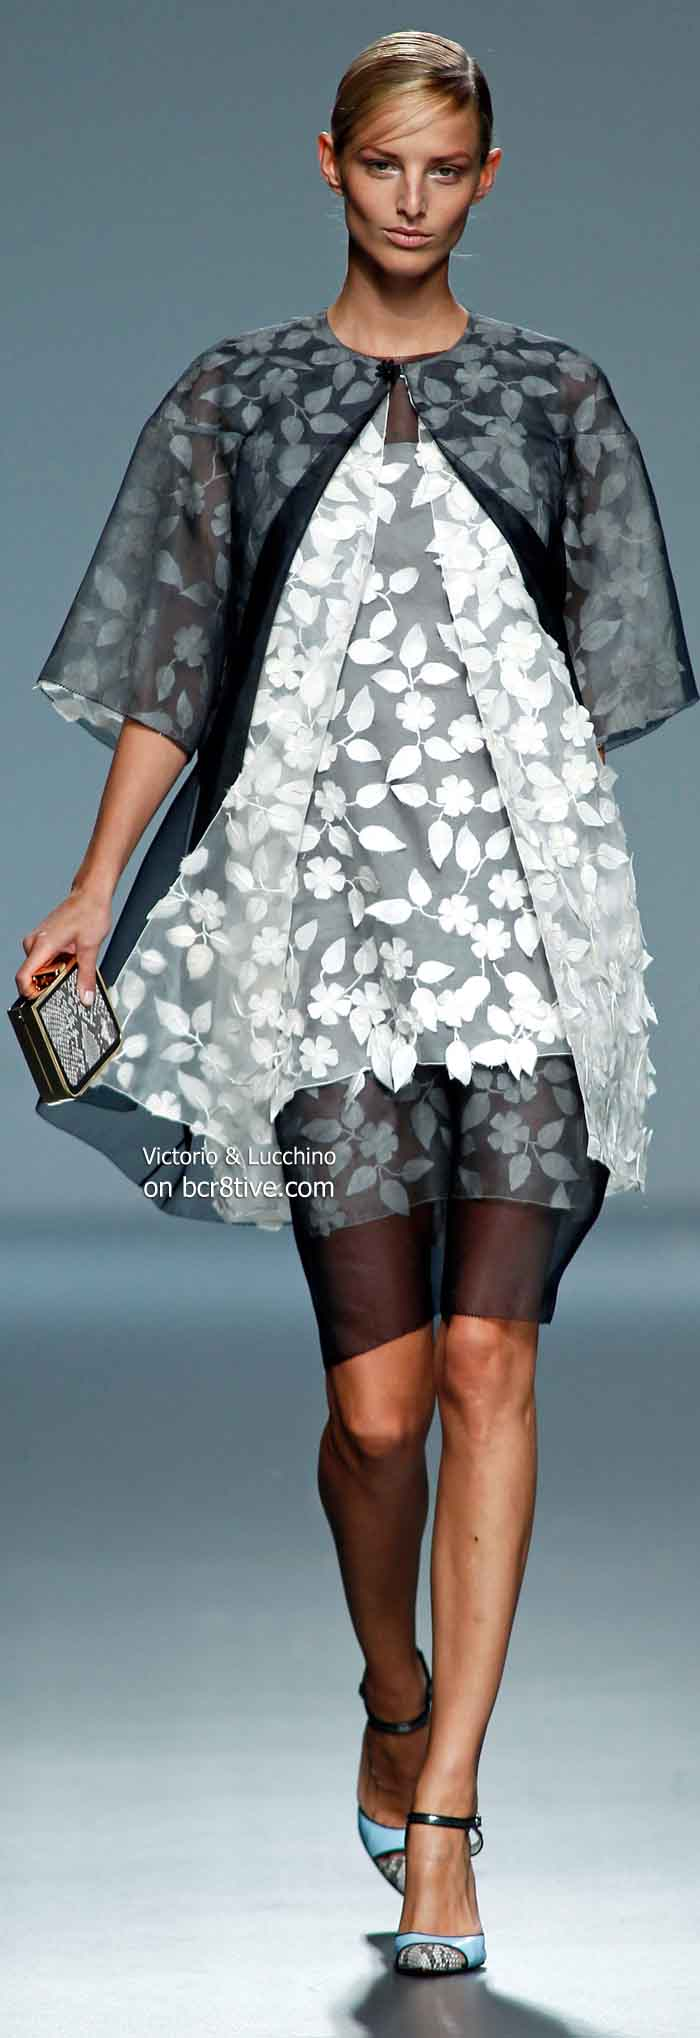 Victorio & Lucchino Spring 2014 #MBFW Madrid